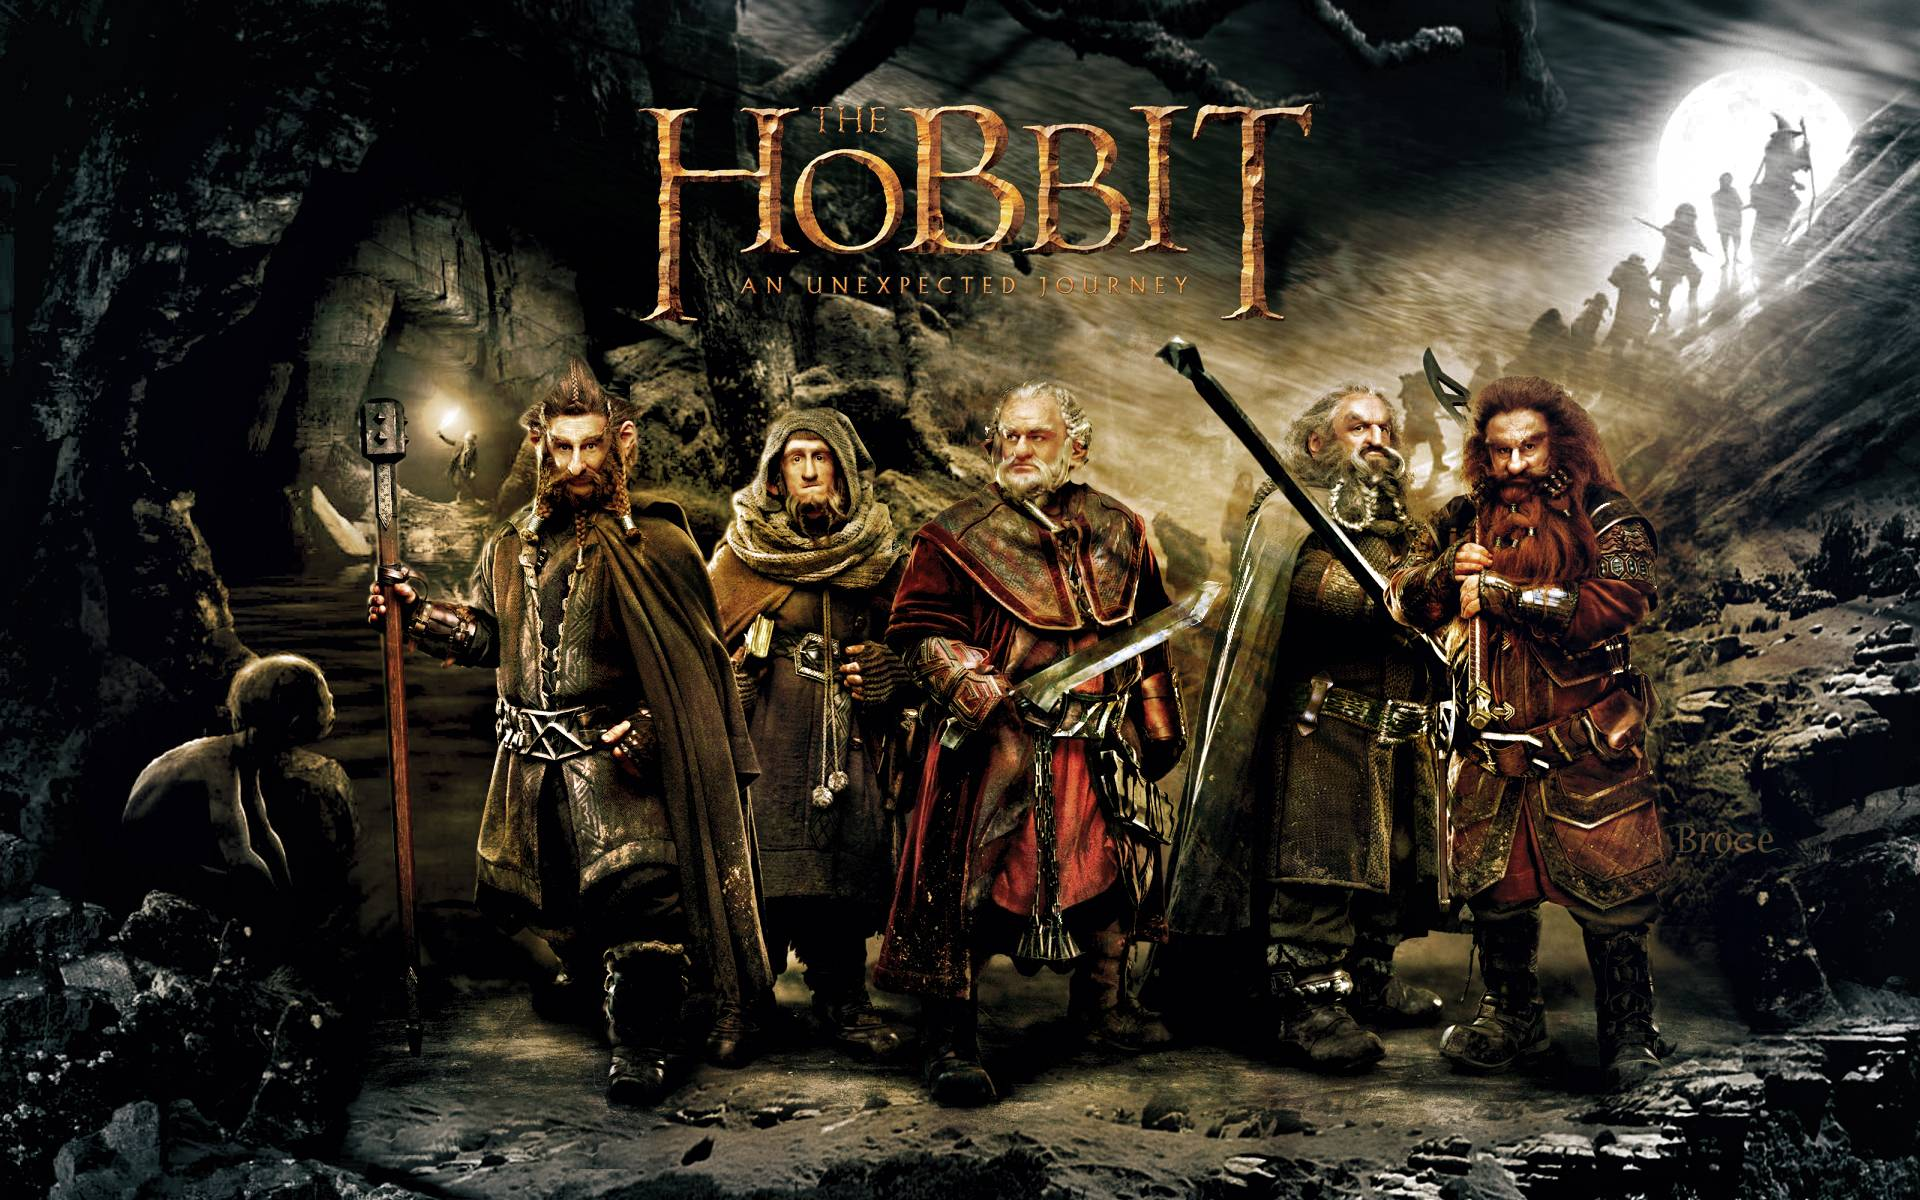 2012 The Hobbit An Unexpected Journey Wallpapers